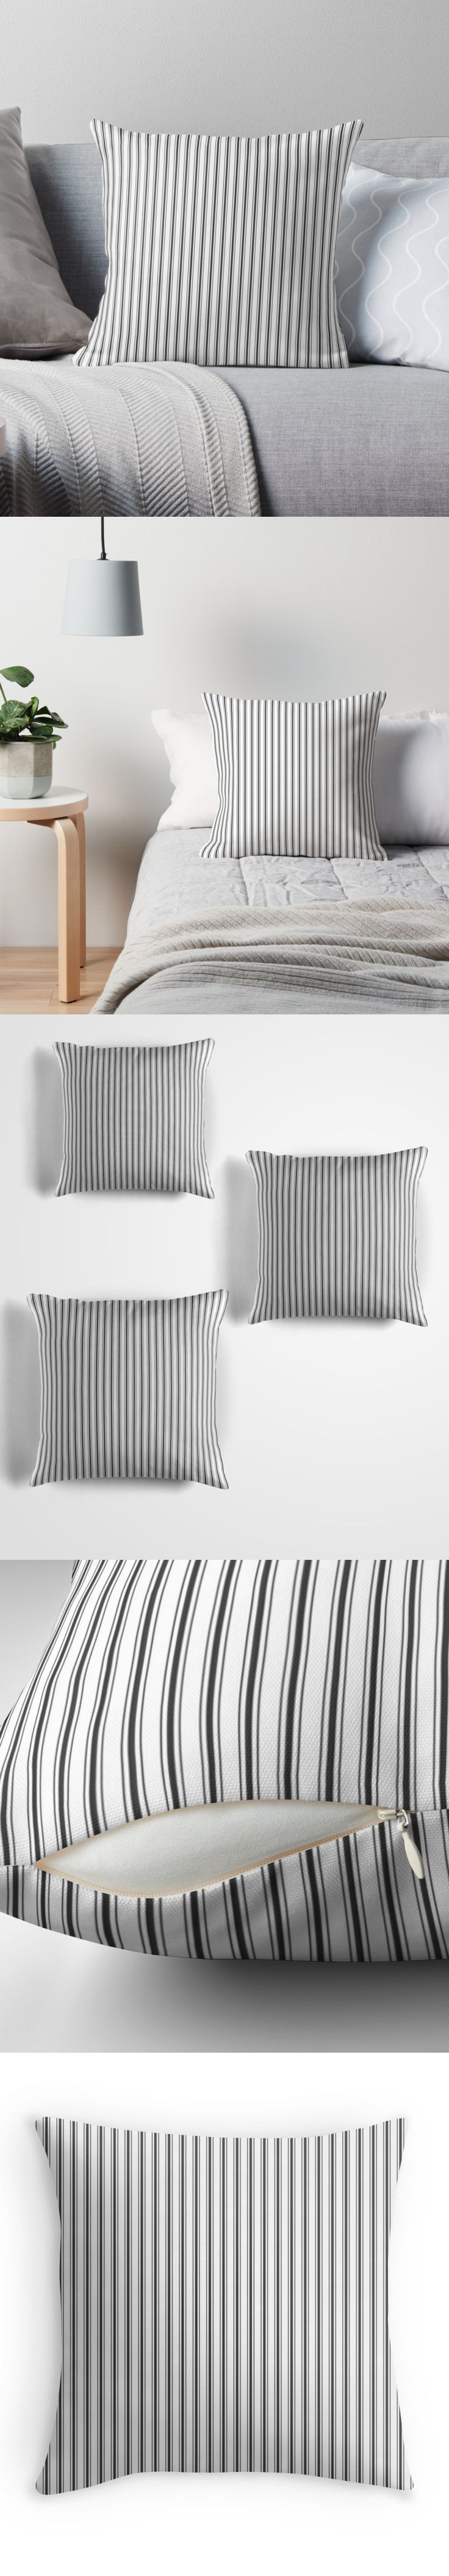 The stitched and woven straight vertical lines of one thin stripe either side of a wider stripe are found in the traditional mattress ticking pattern.The classic black and white ticking seen in mattresses, bedding and pillow covers is known the world over and is here in a narrow version.